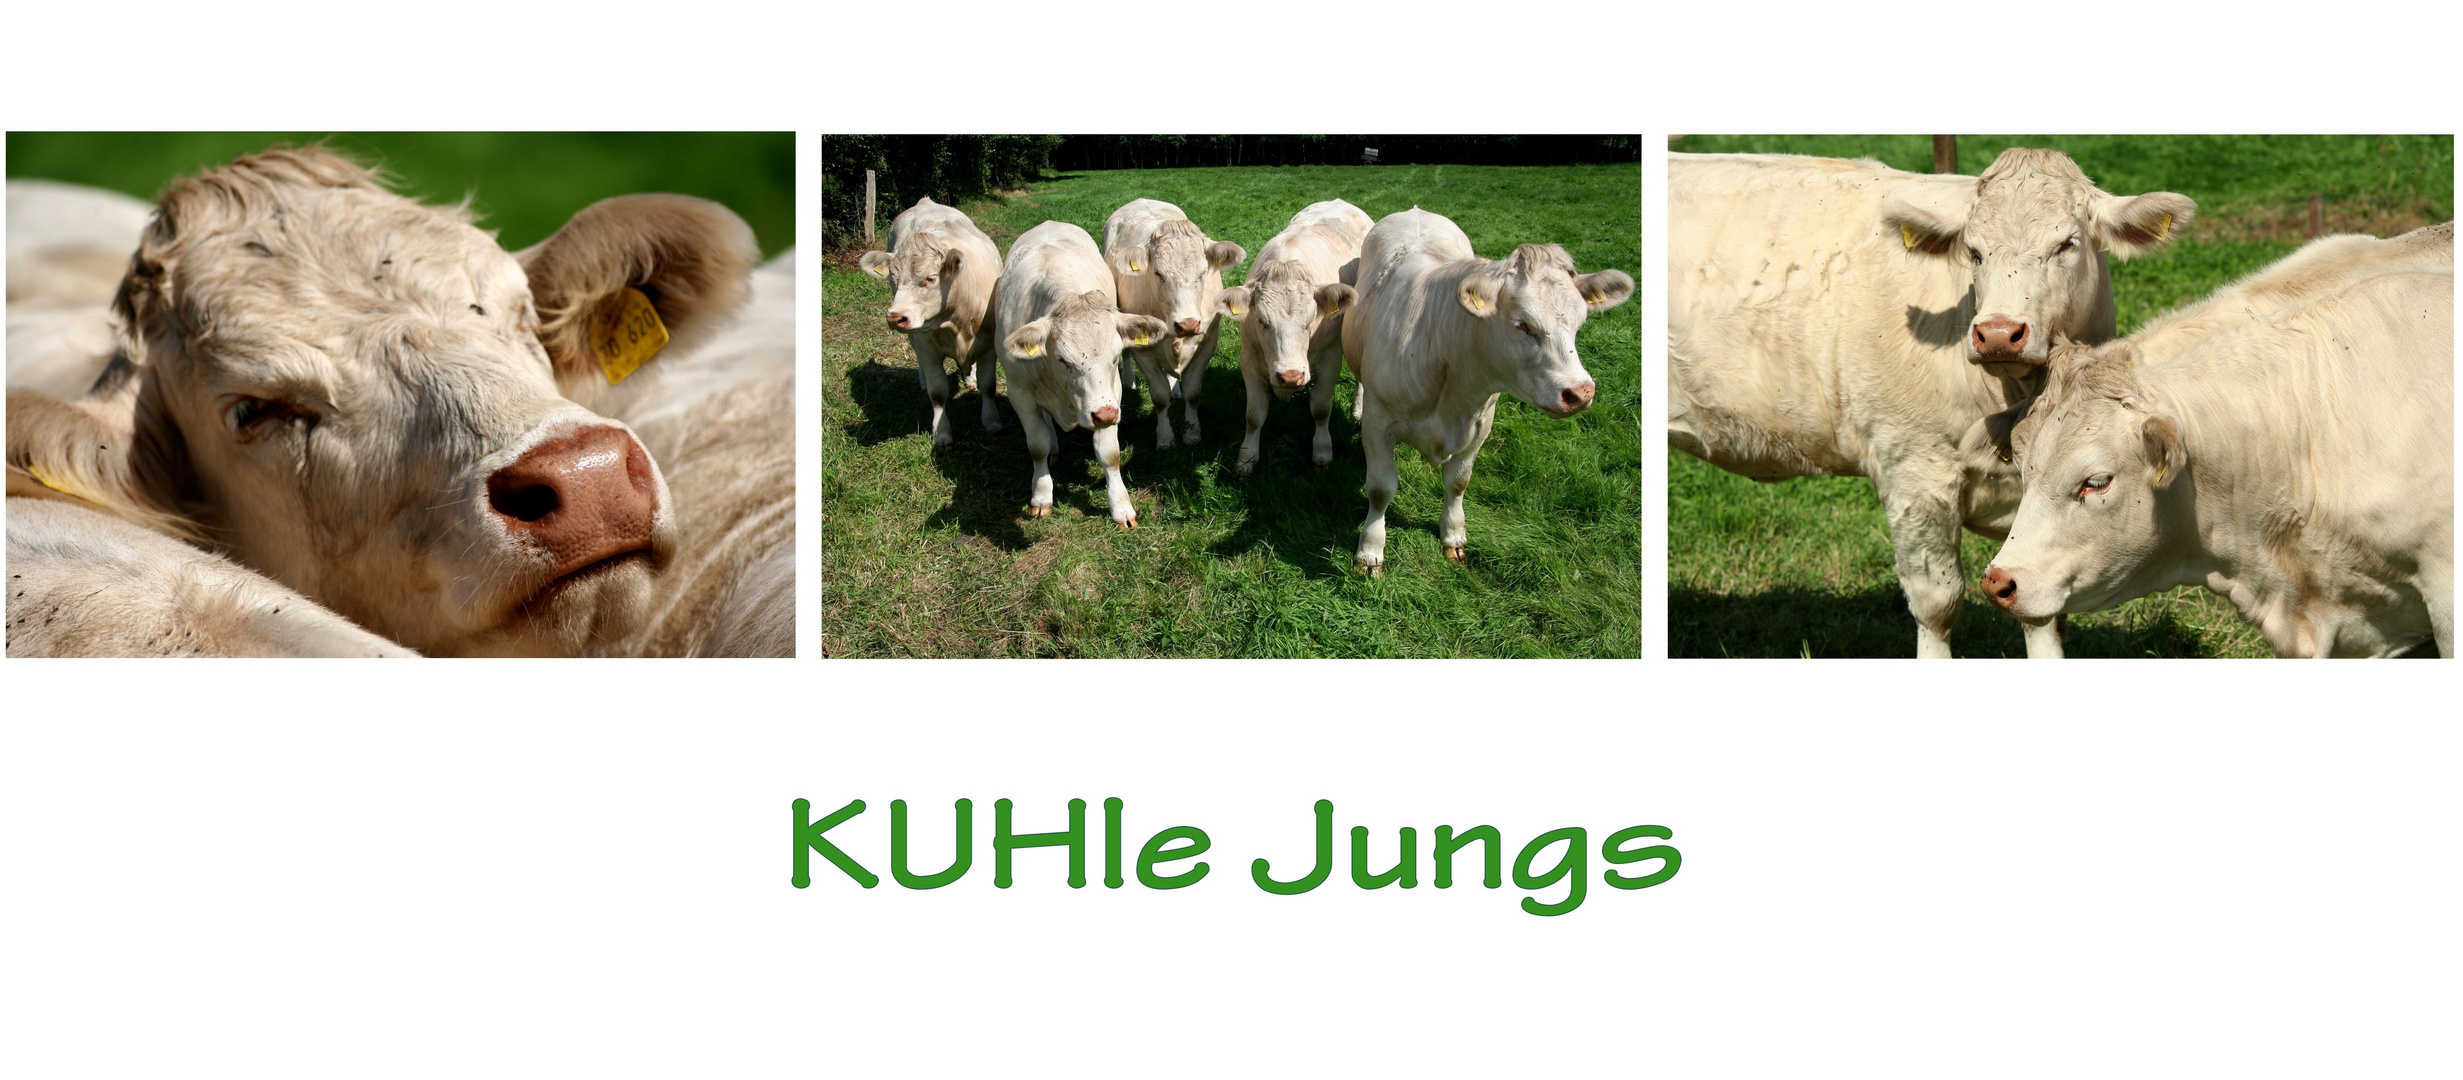 ... und KUHle Jungs